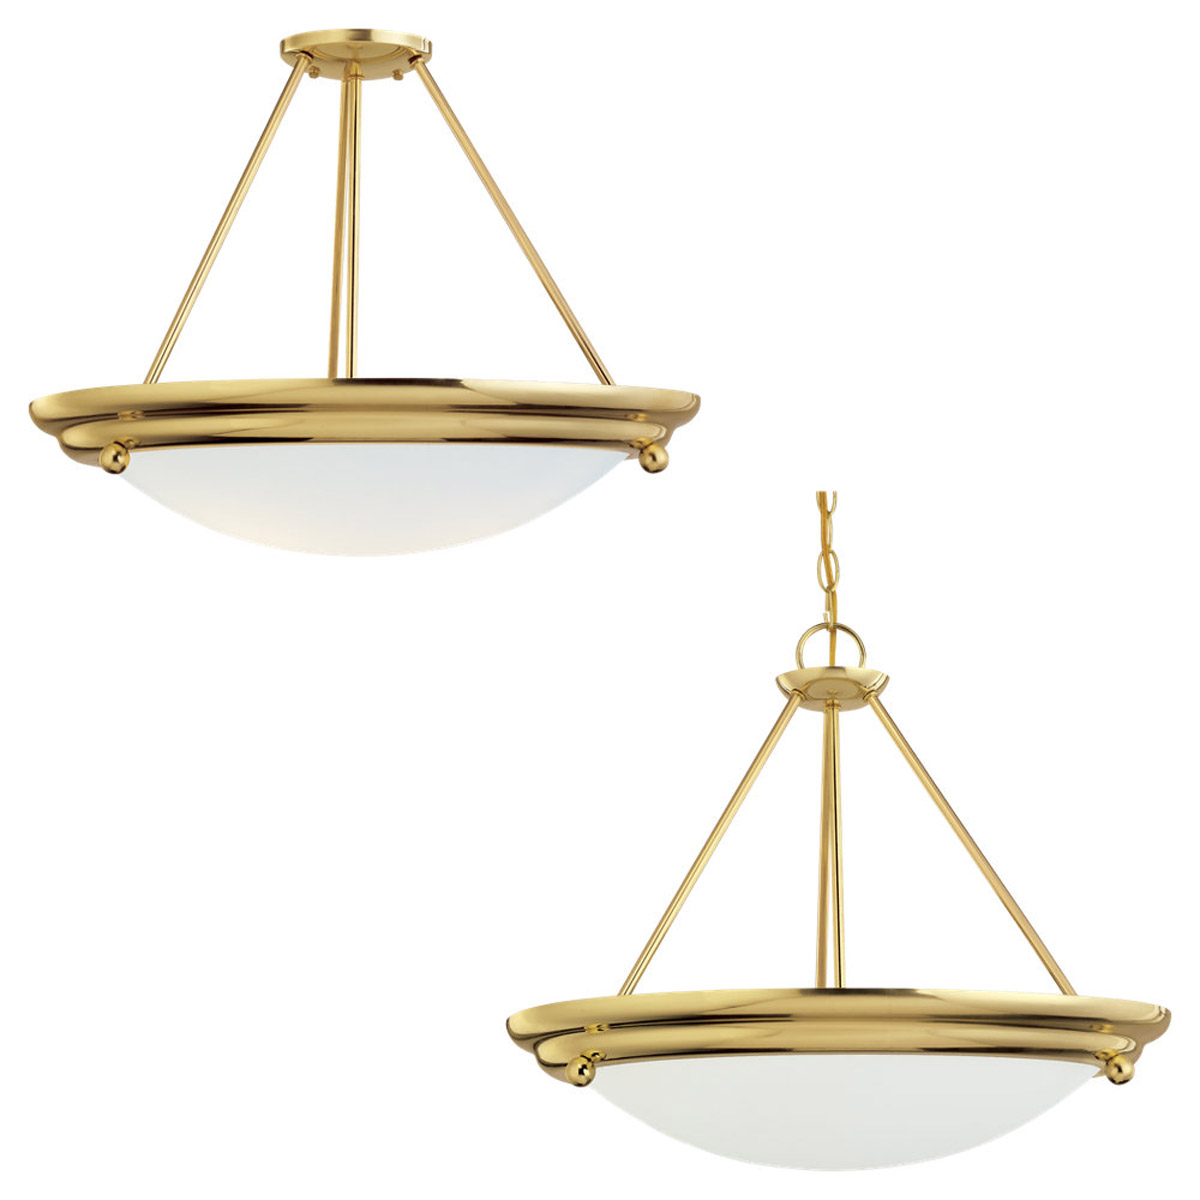 Sea Gull Lighting Centra 4 Light Semi-Flush Mount in Polished Brass 66238-02